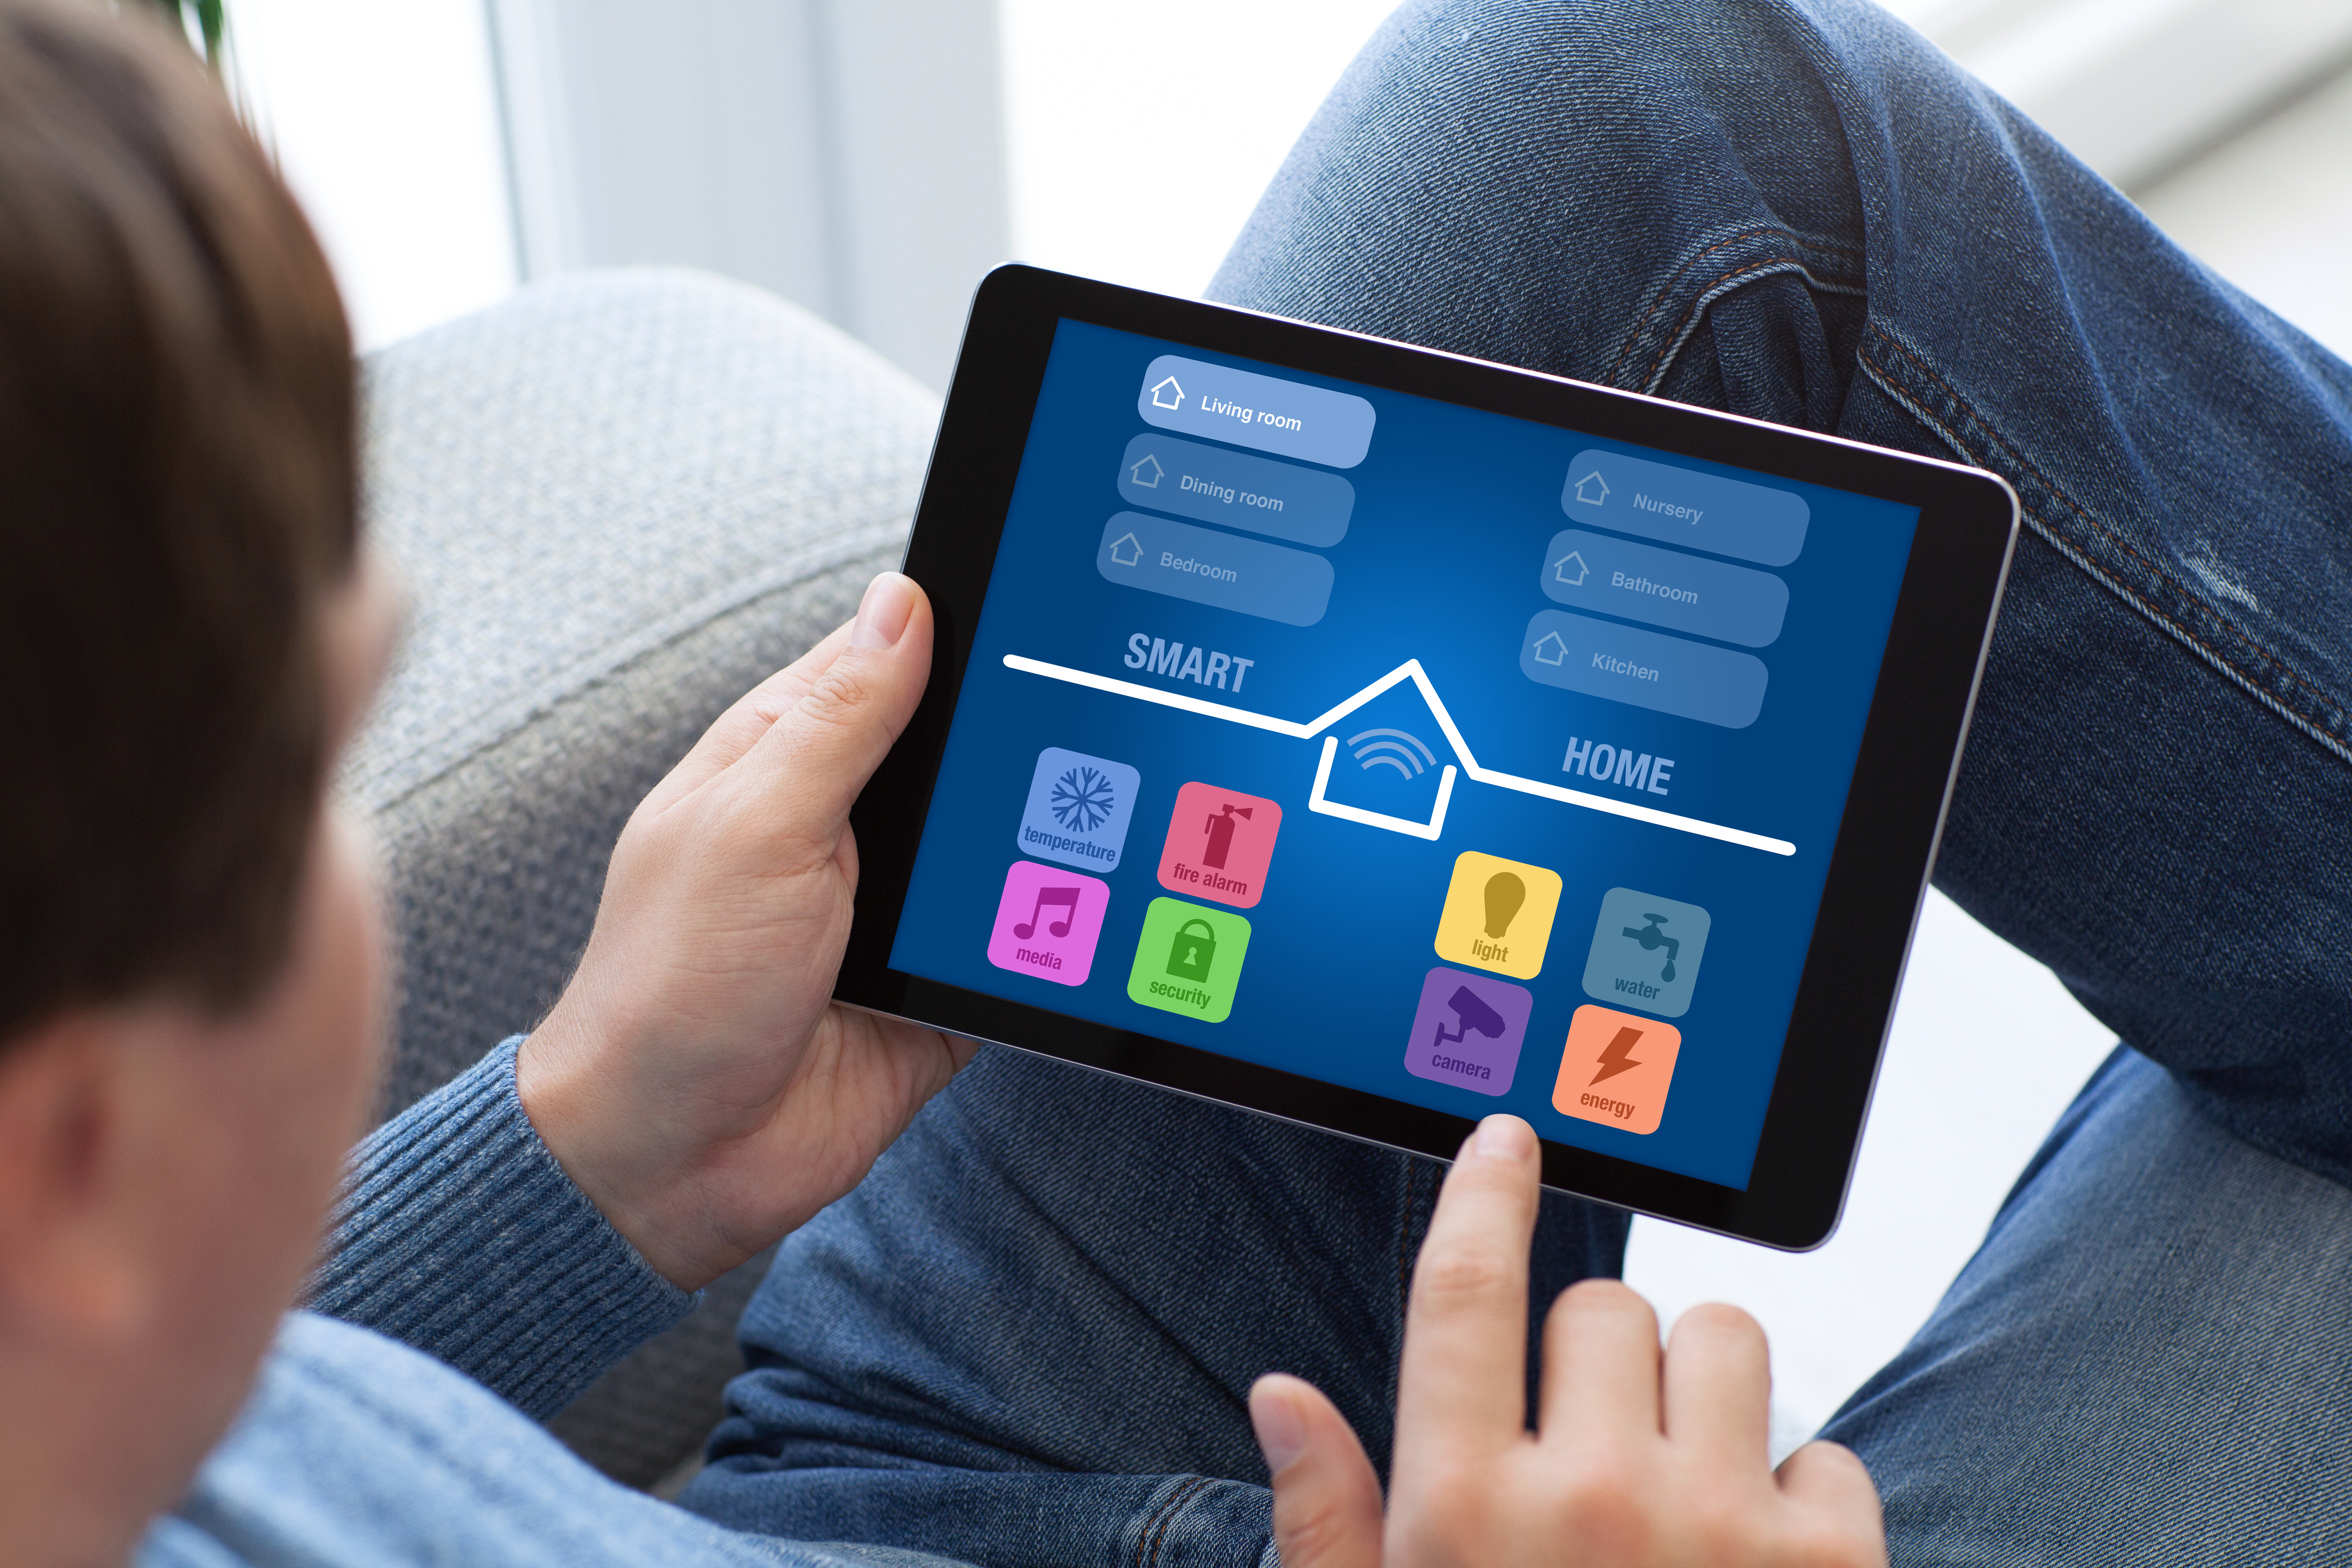 Man views his smart hub on a tablet device